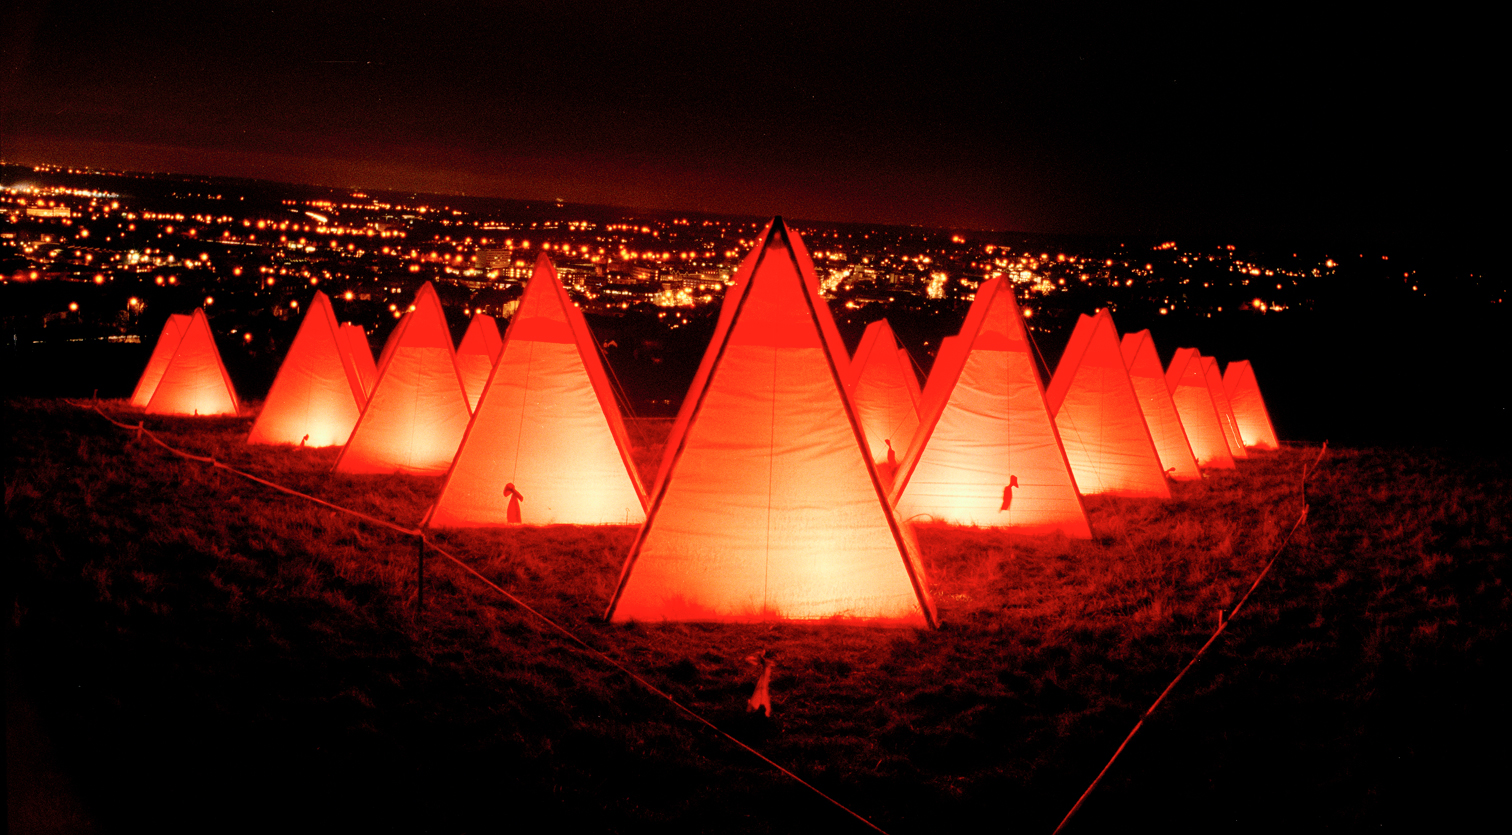 Red Tents; a contemporary sculptural light installation and landscape art celebrating International Women's Day.